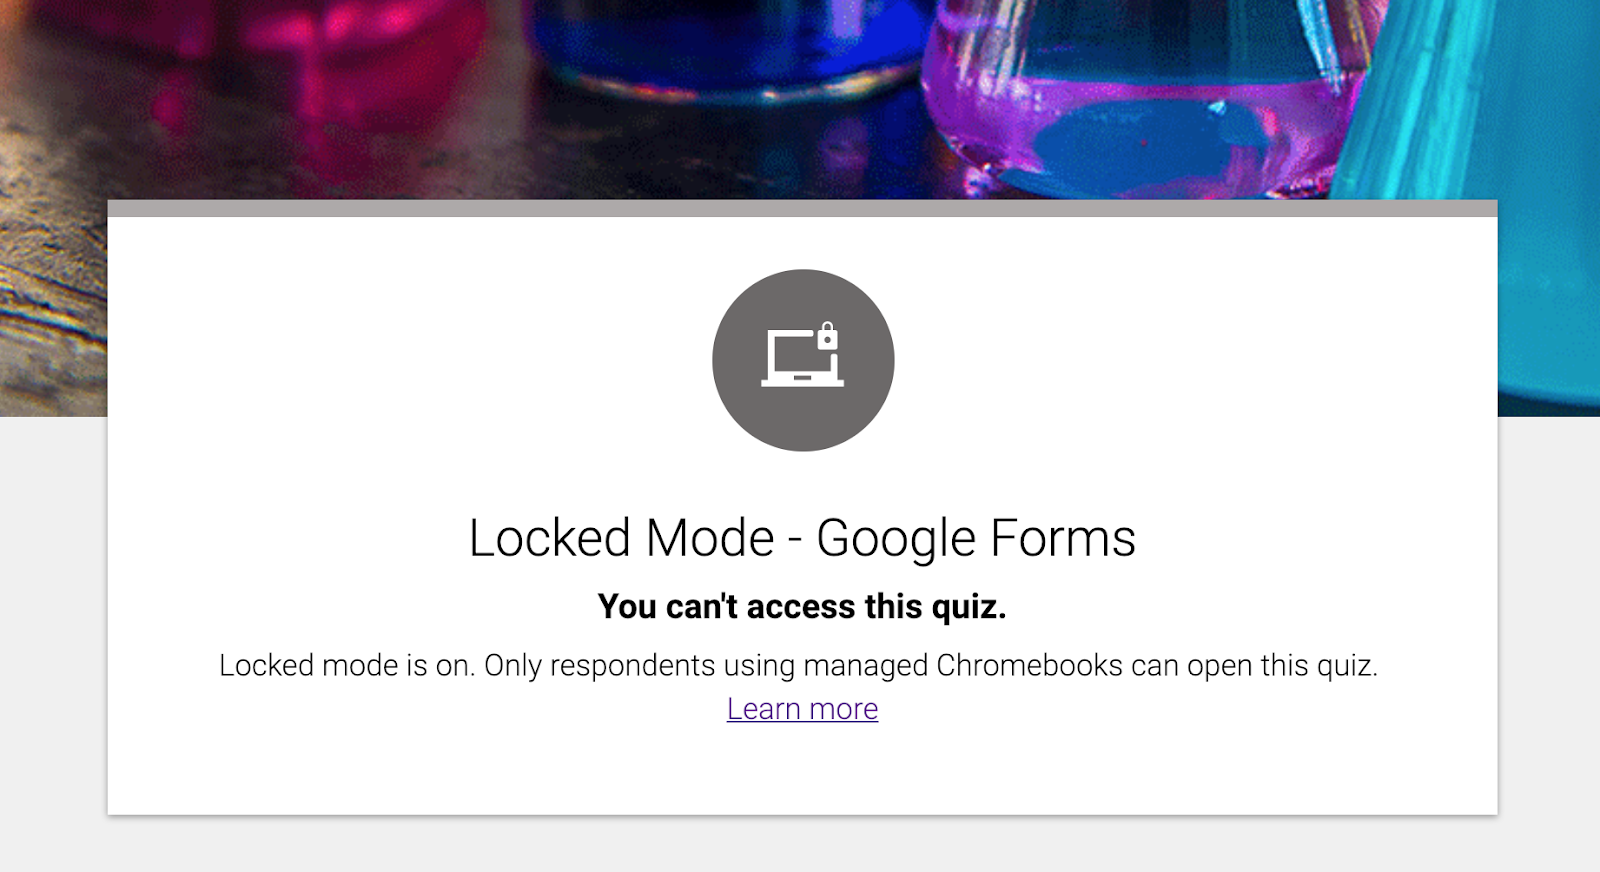 Getting Started With Locked Mode for Quizzes on Chromebooks